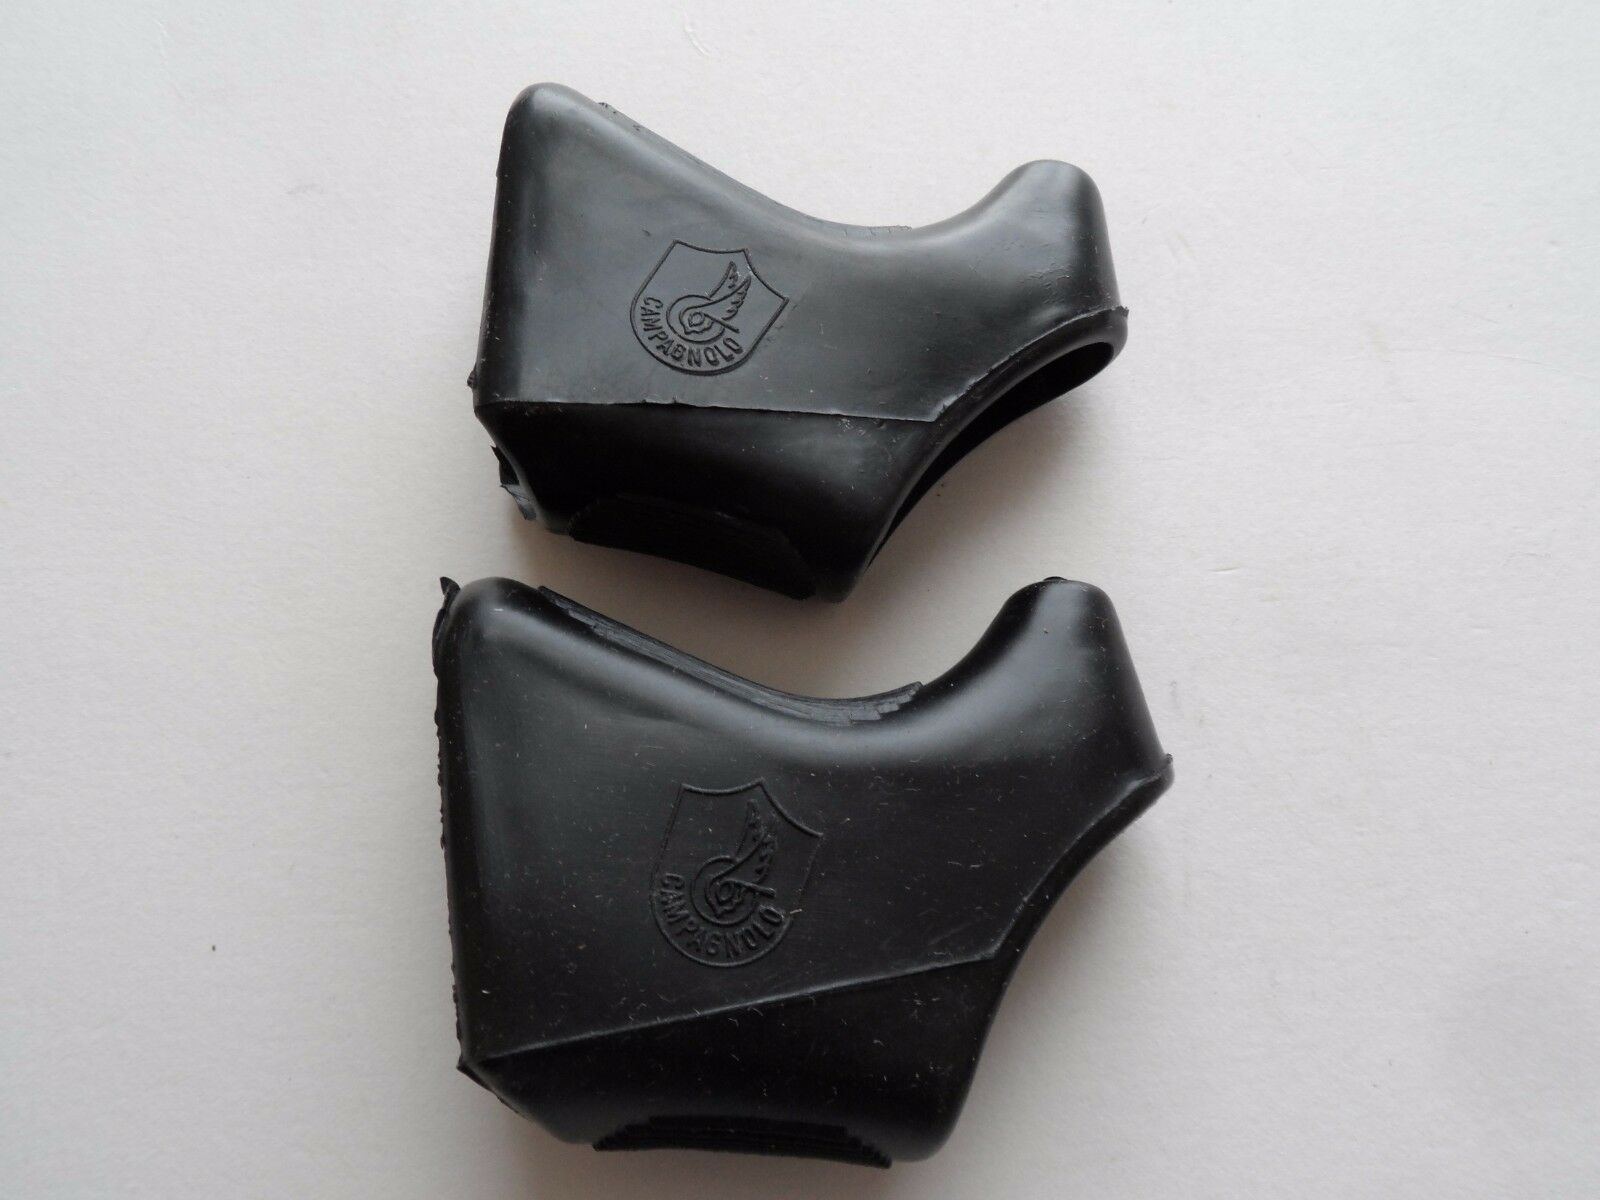 NOS Vintage 1980s  Campagnolo C Record Delta 1st Generation brake lever hoods  free shipping